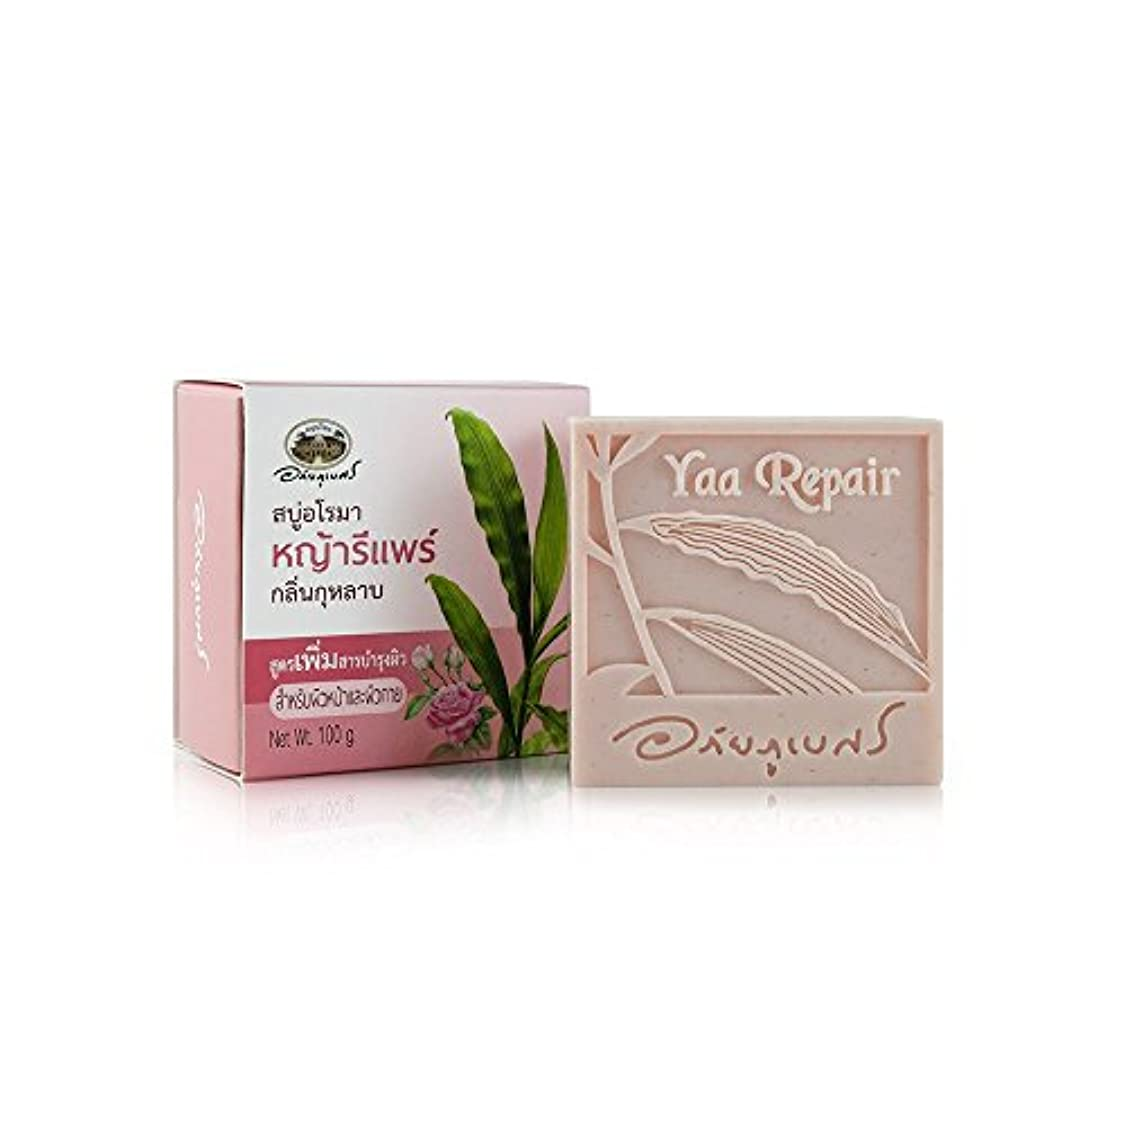 登録カメラ花瓶Abhaibhubejhr Thai Aromatherapy With Rose Skin Care Formula Herbal Body Face Cleaning Soap 100g. Abhaibhubejhr...